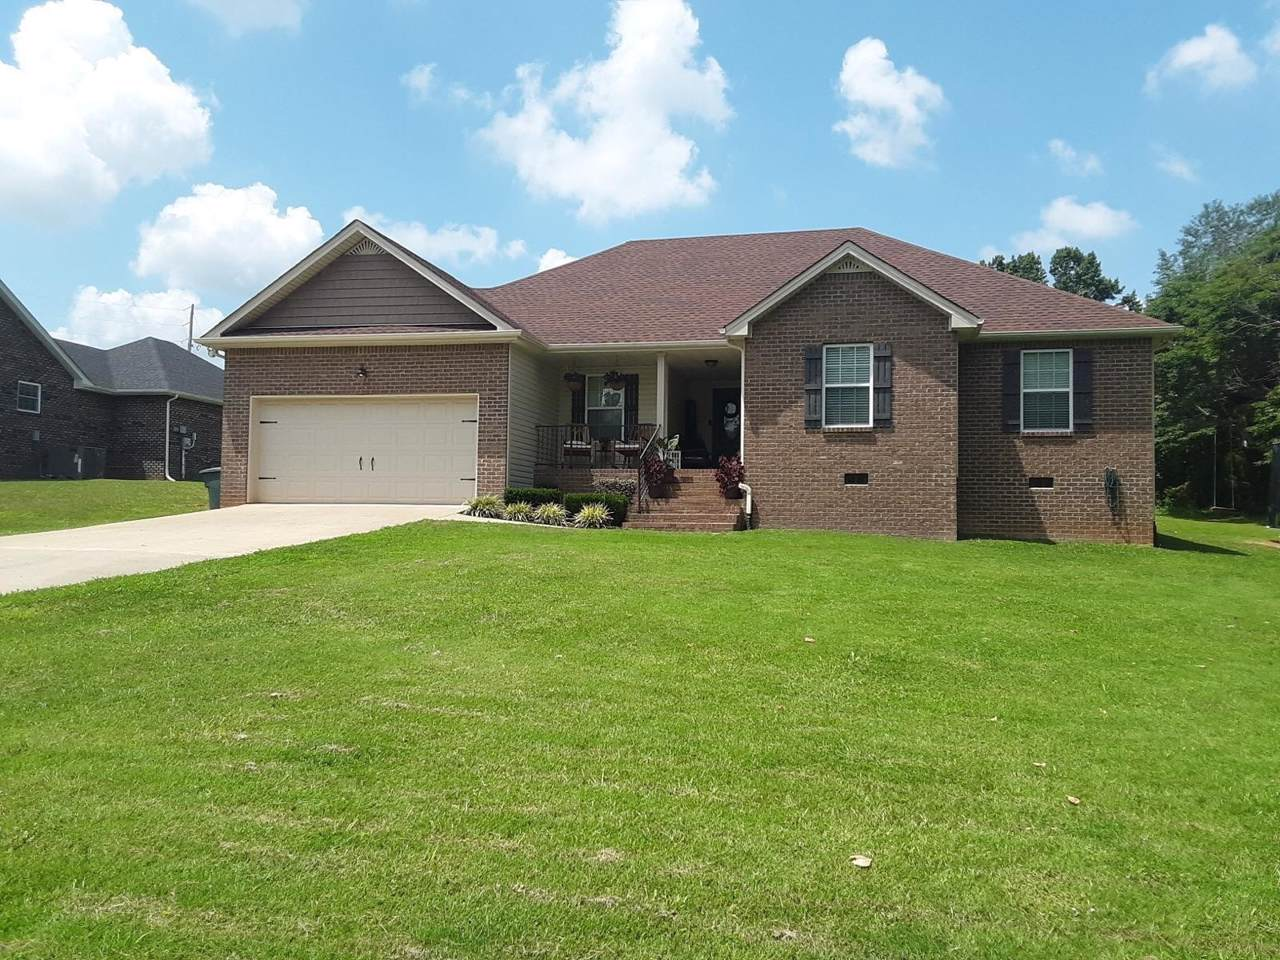 209 Onslow Dr - Photo 1